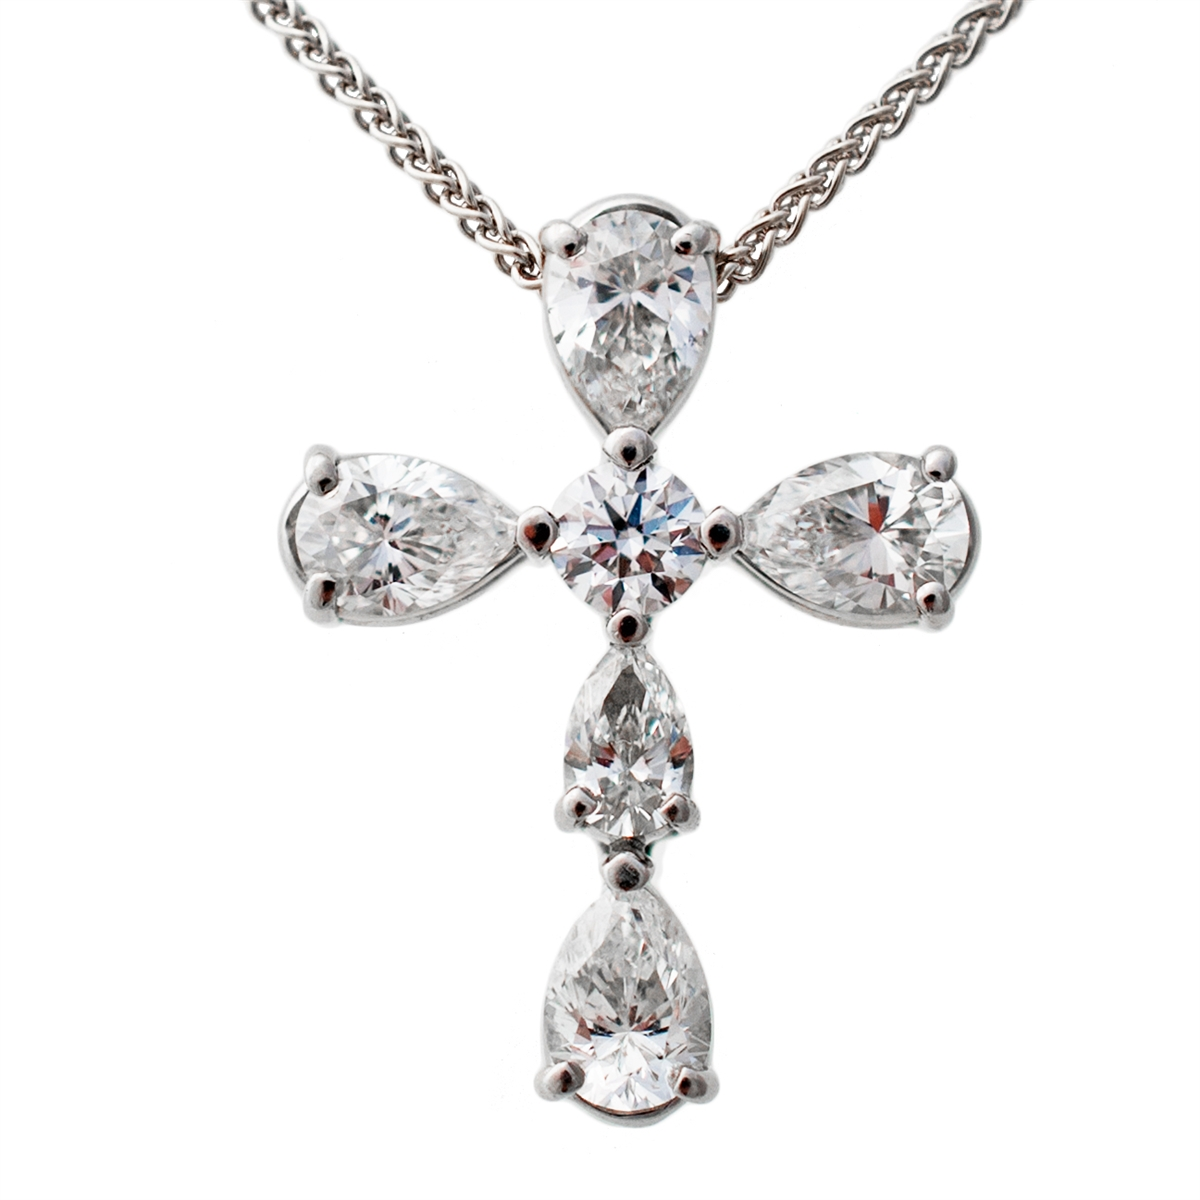 org at pear z necklaces platinum j shaped necklace carat drop pendant betteridge jewelry id diamond solitaire